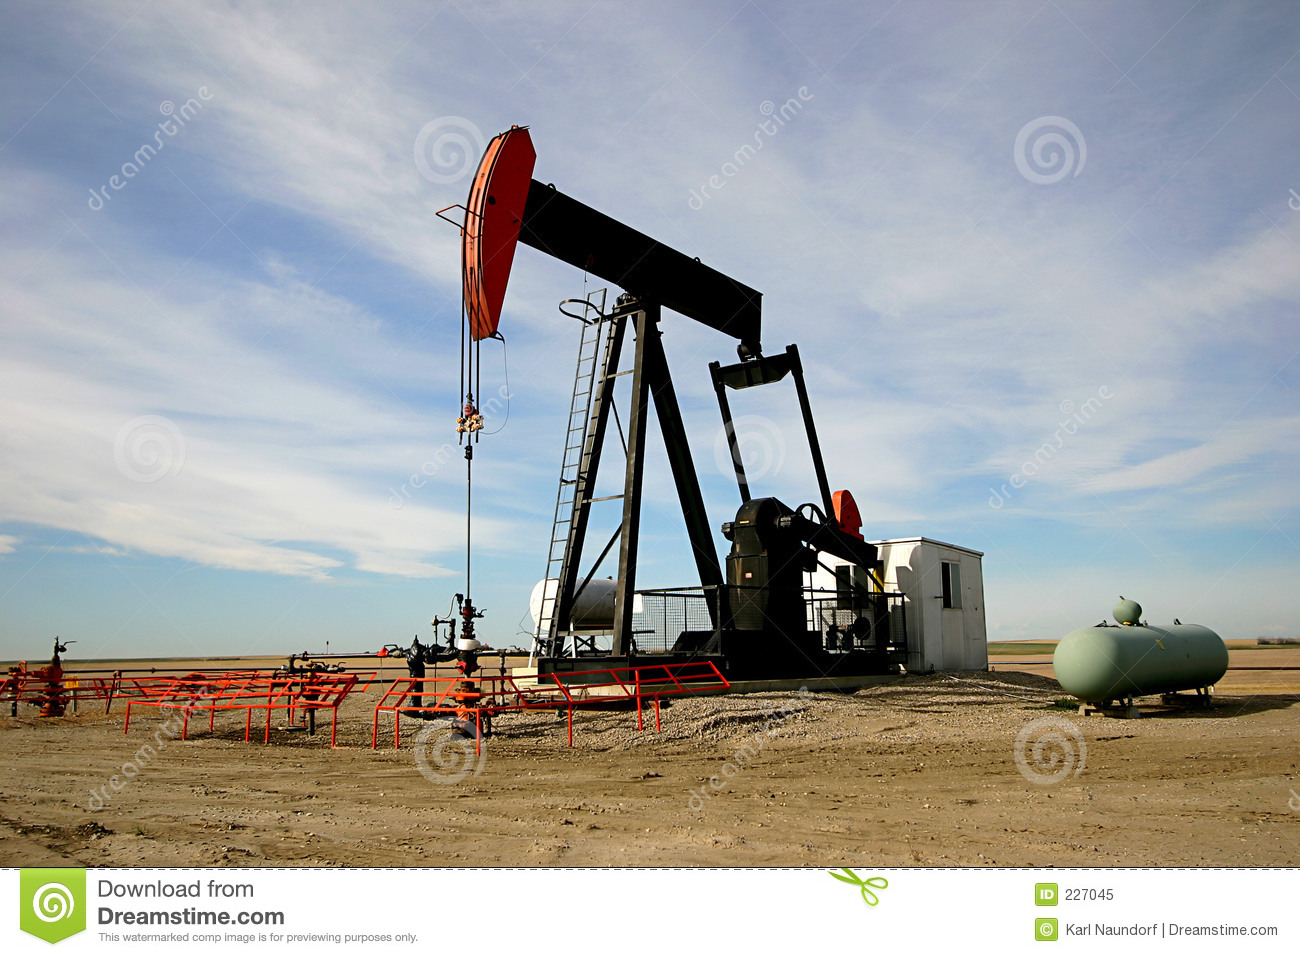 Oil Pump Jack Royalty Free Stock Photo - Image: 227045